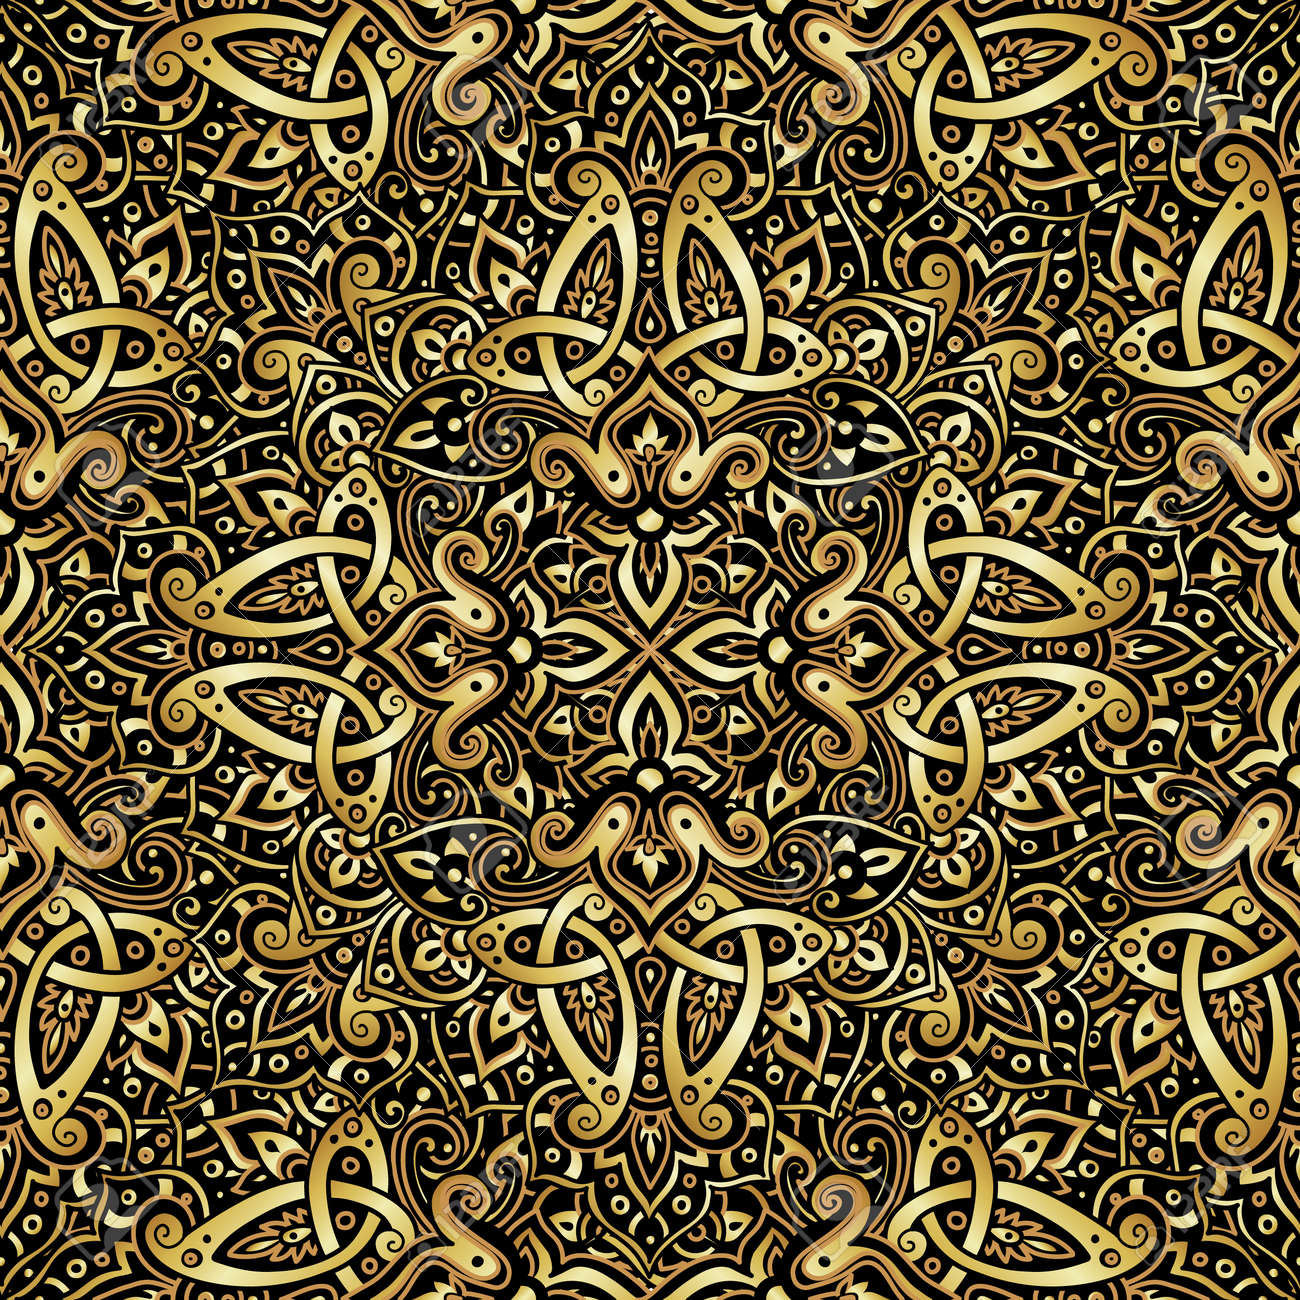 Ethnic seamless pattern in gold and black colors. Abstract background. Oriental decorative elements. Boho style vector illustration. - 64259462